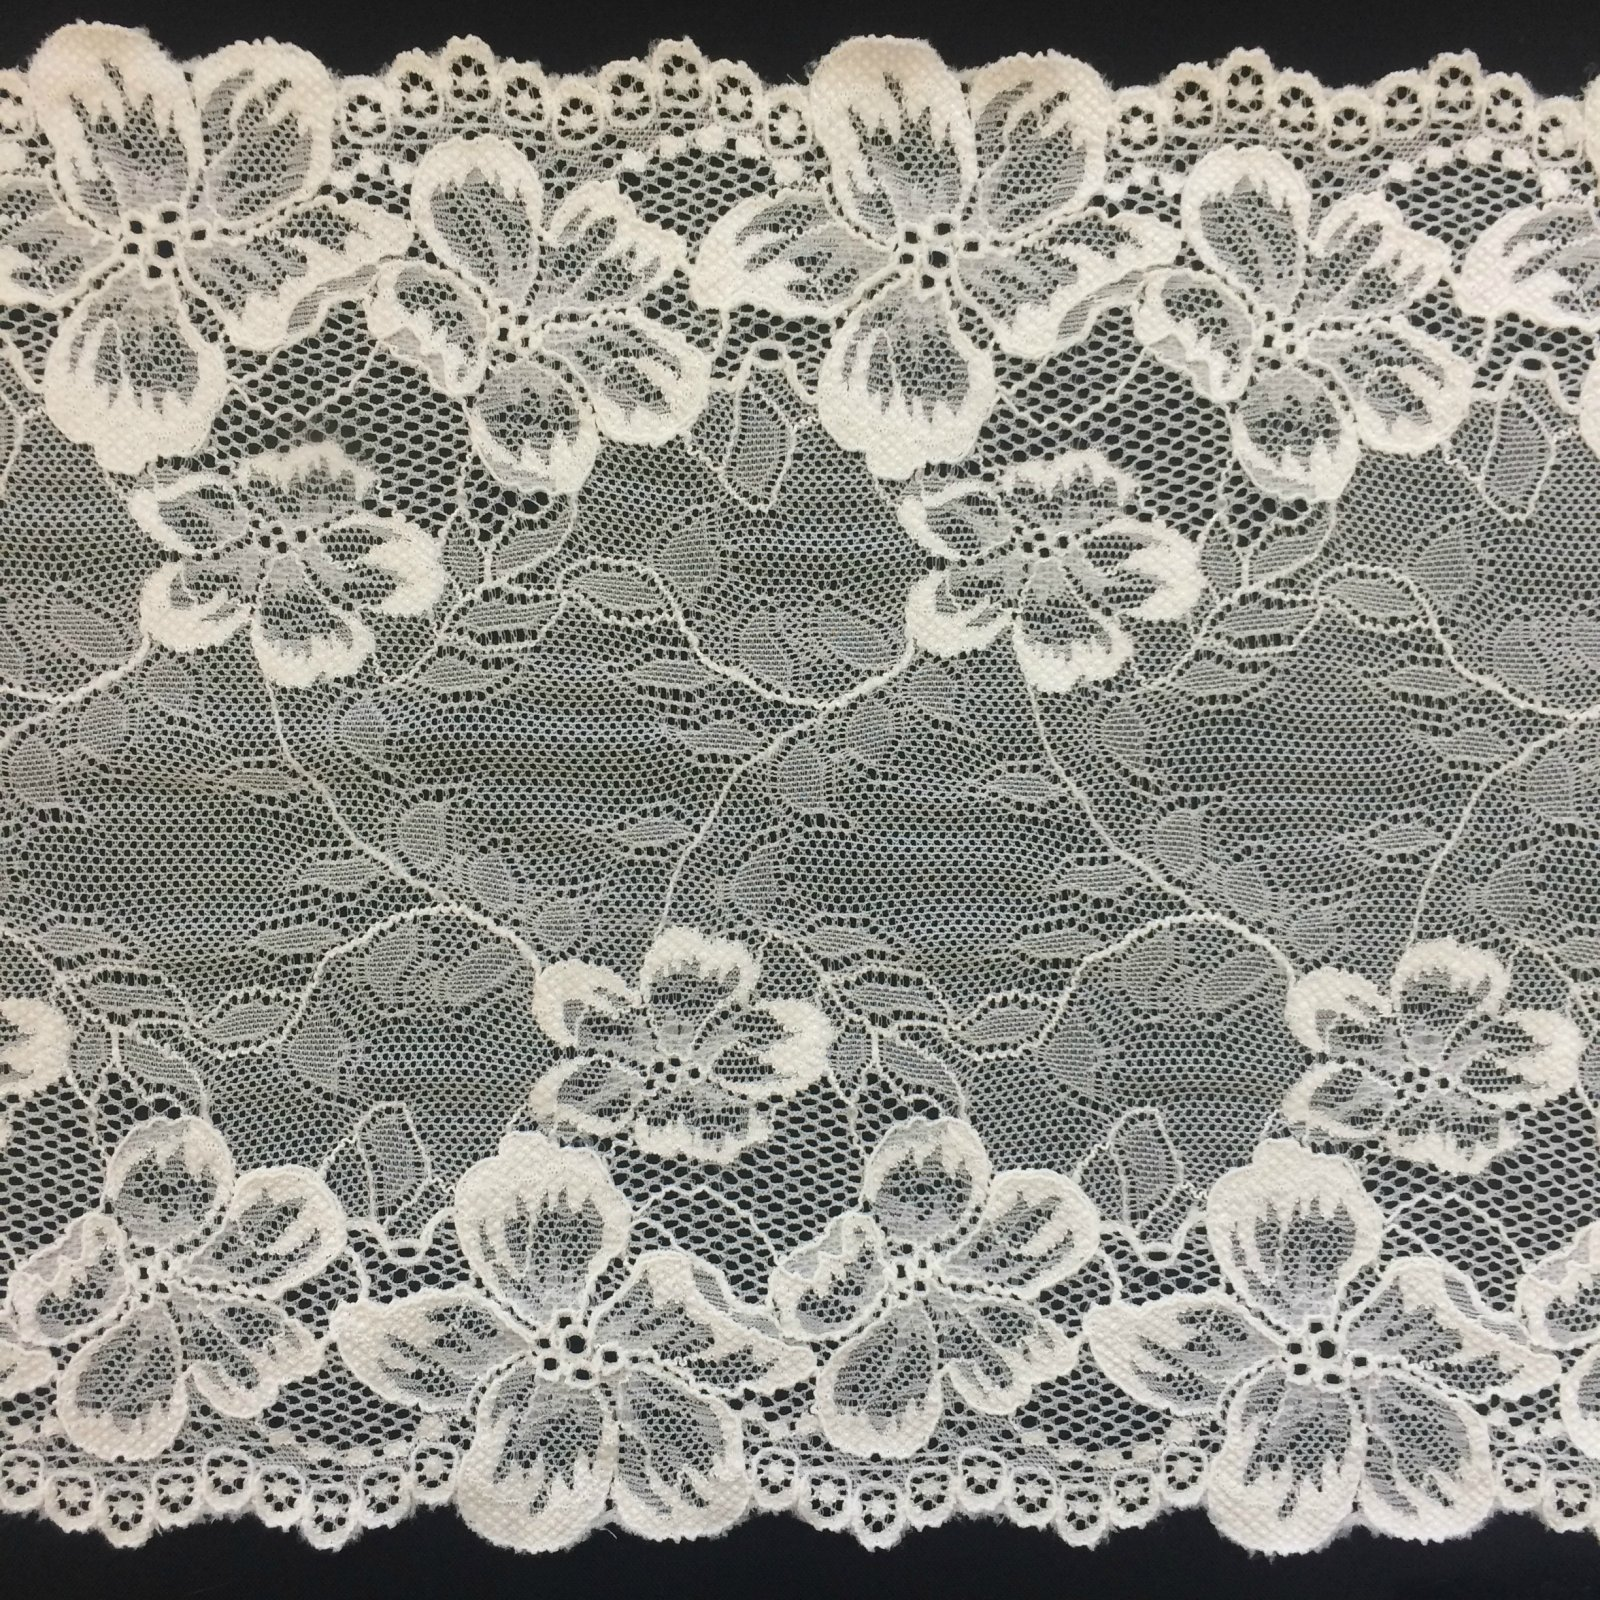 8 5/8 Wide Stretch Floral & Vine Lace Trim - Ivory